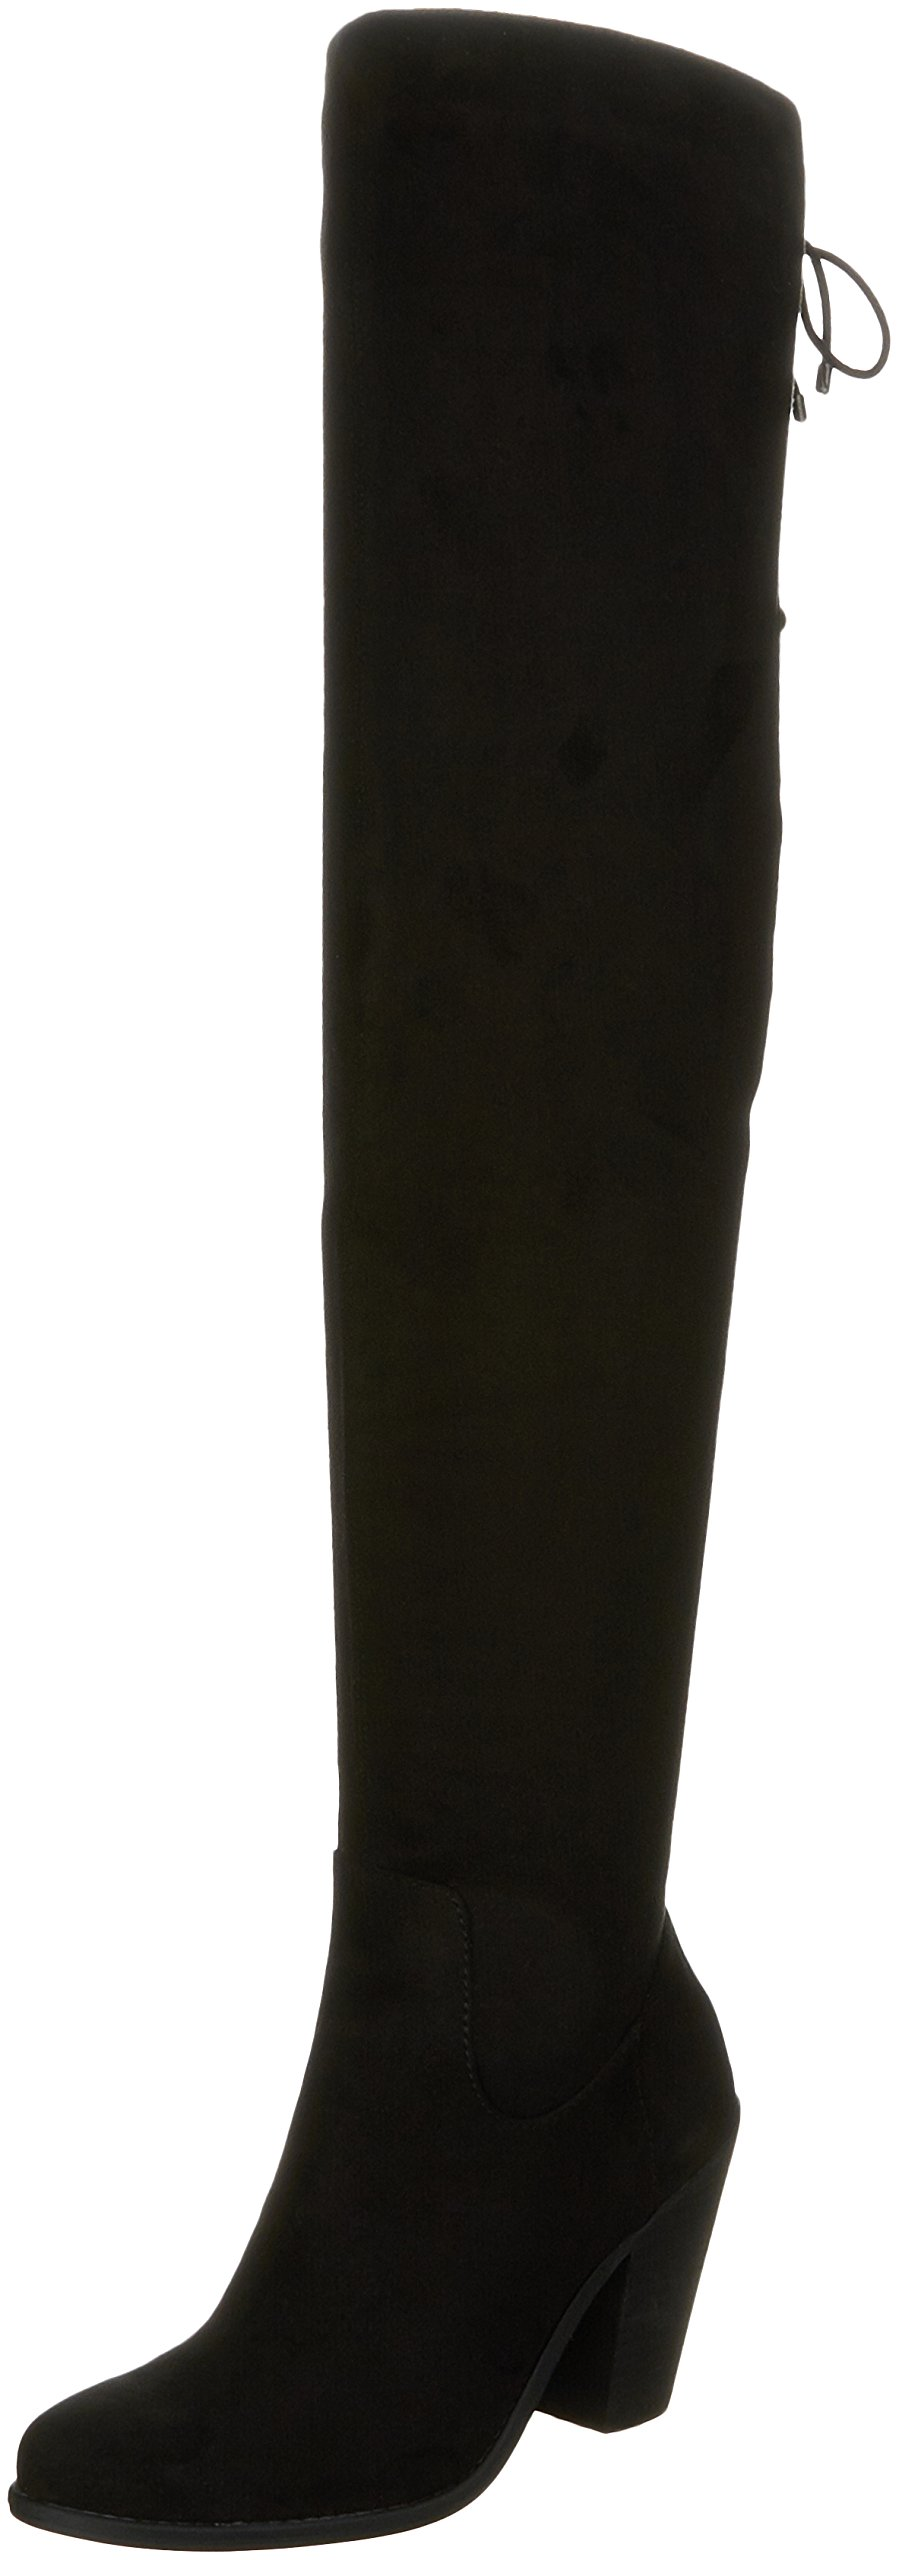 Jessica Simpson Women's Coriee Over The Knee Boot,Black Stretch Microsuede,US 9 by Fancy Jessica Simpson